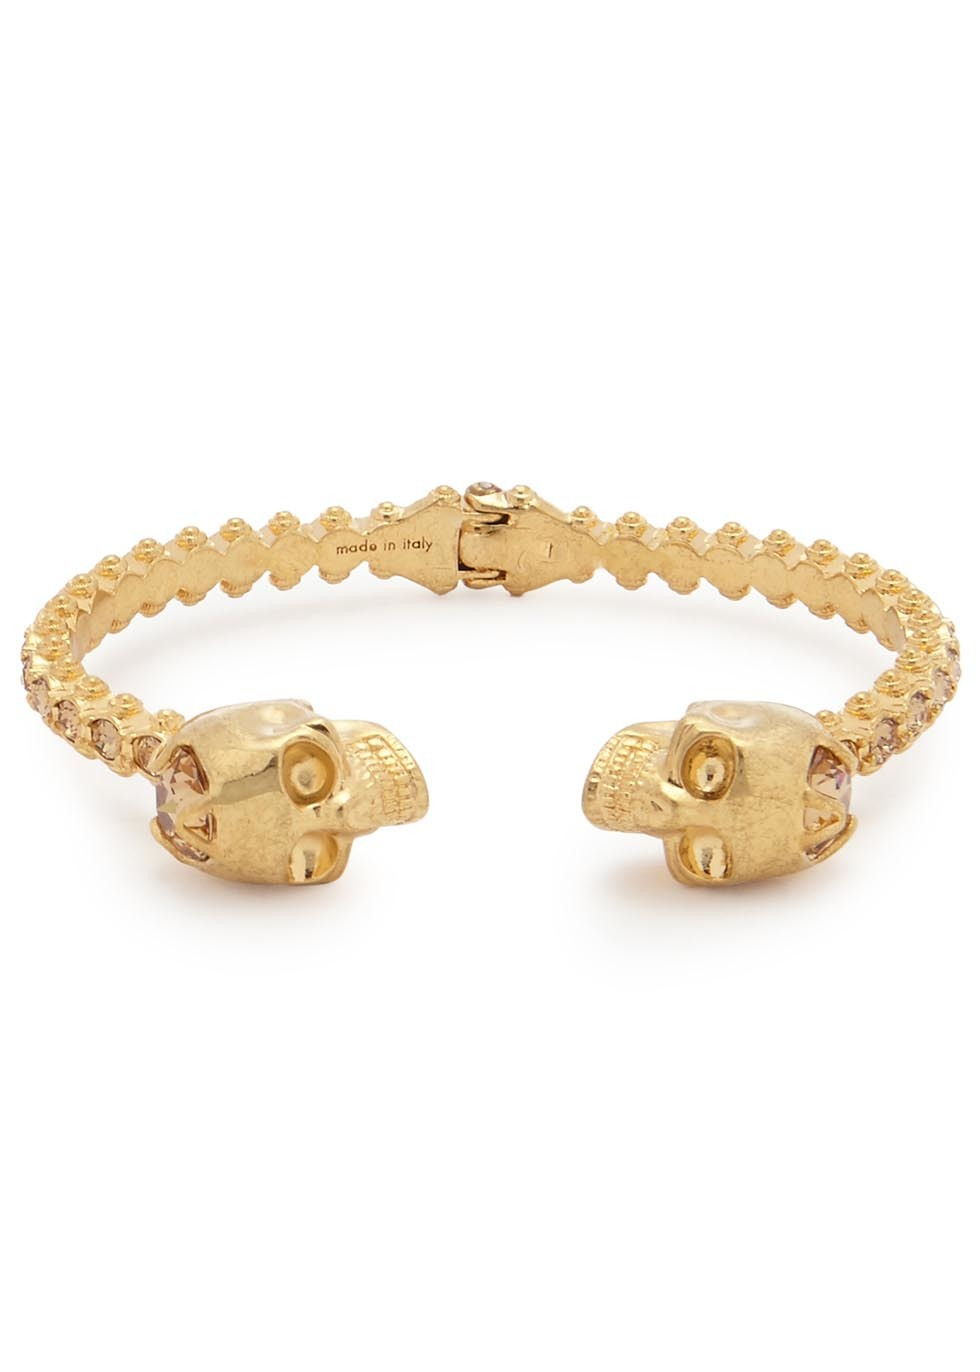 Swarovski Crystal Embellished Skull Bracelet - predominant colour: gold; occasions: casual, creative work; style: cuff; size: standard; material: chain/metal; finish: metallic; embellishment: crystals/glass; season: a/w 2015